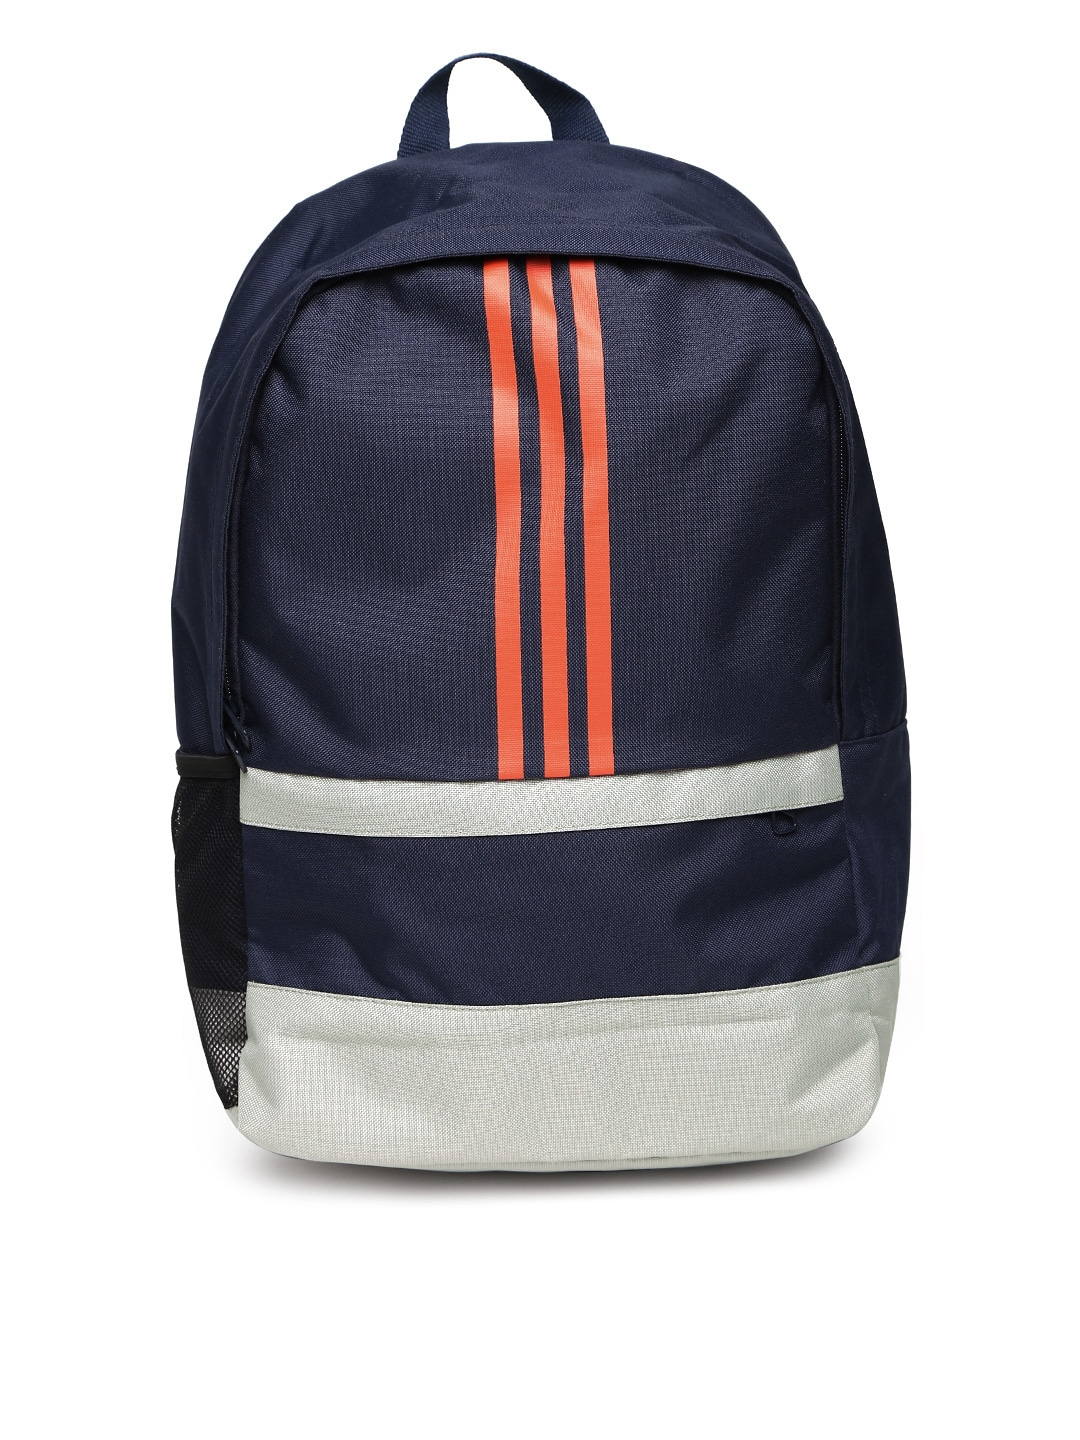 3e29a8ef7c Adidas m66767 Unisex Navy Versatile 3s Backpack - Best Price in ...